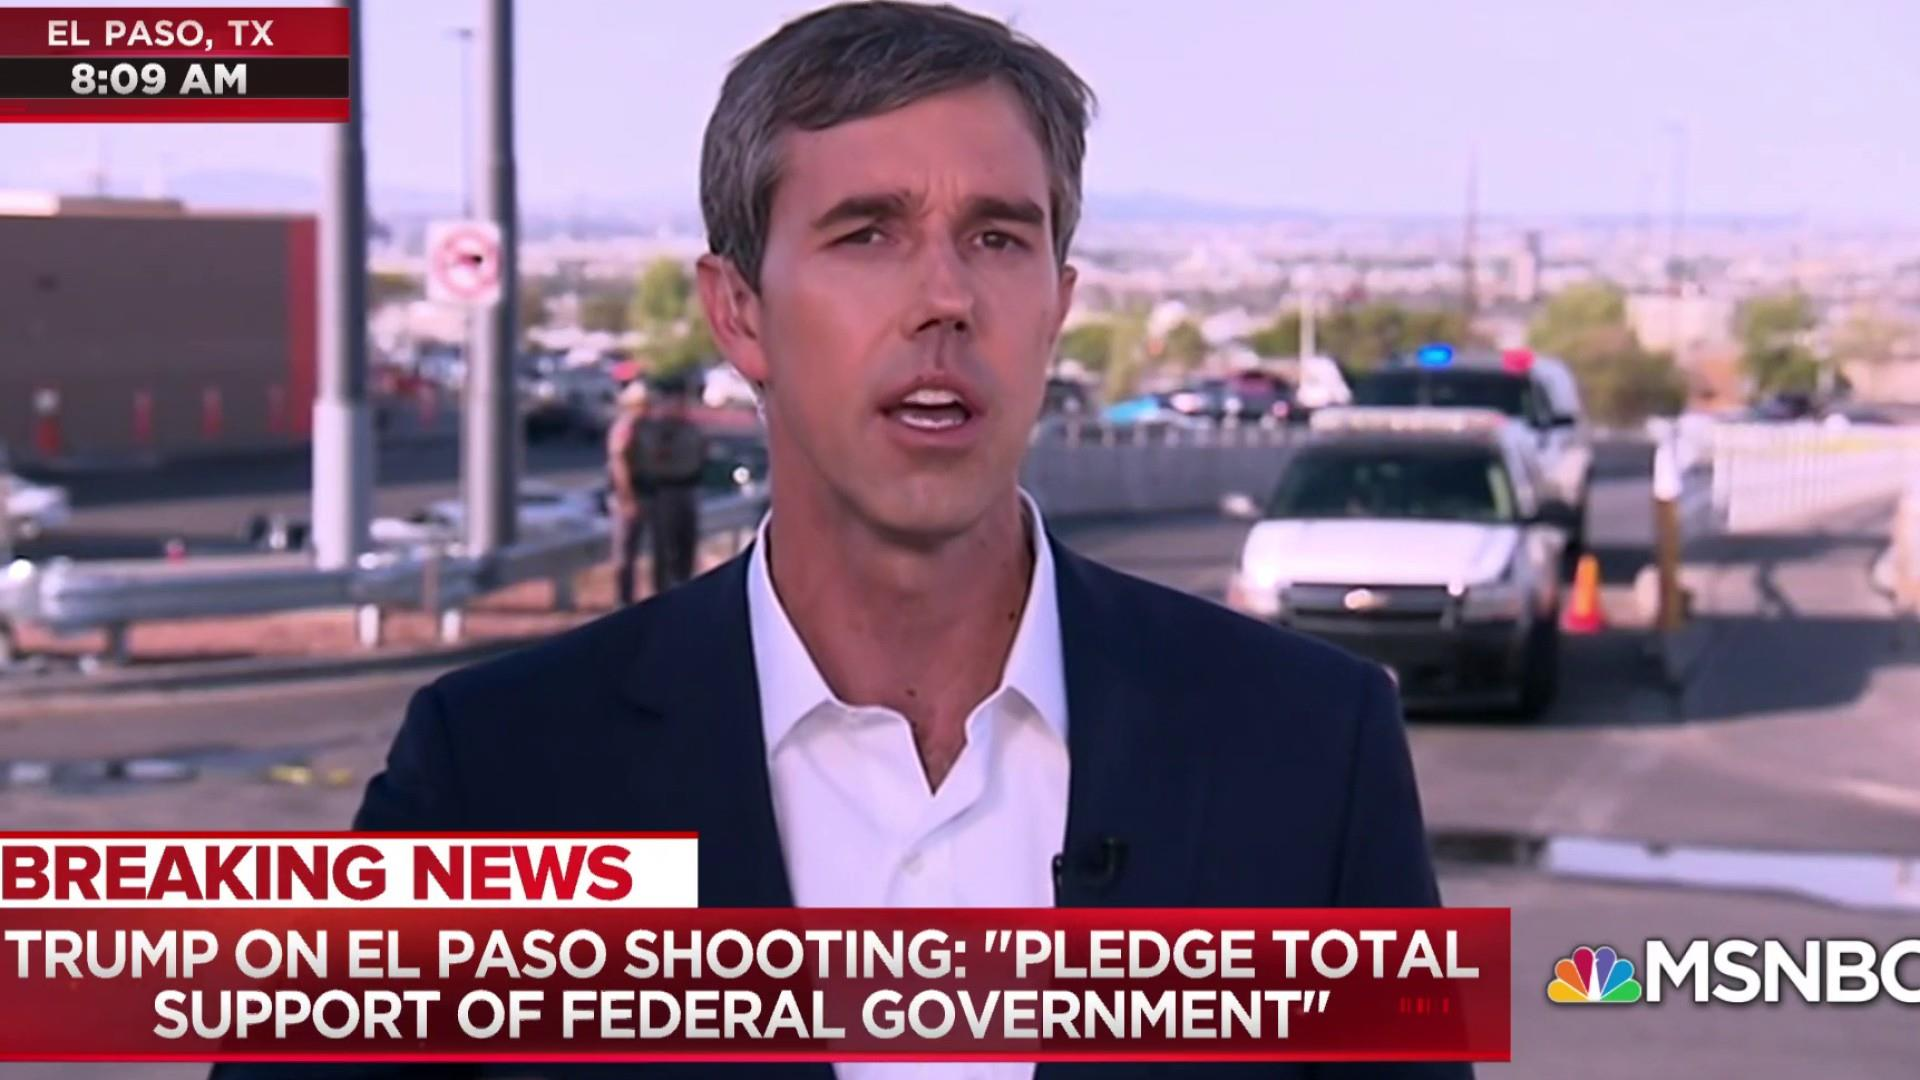 Beto O'Rourke on El Paso: We've got to be bigger than this hate